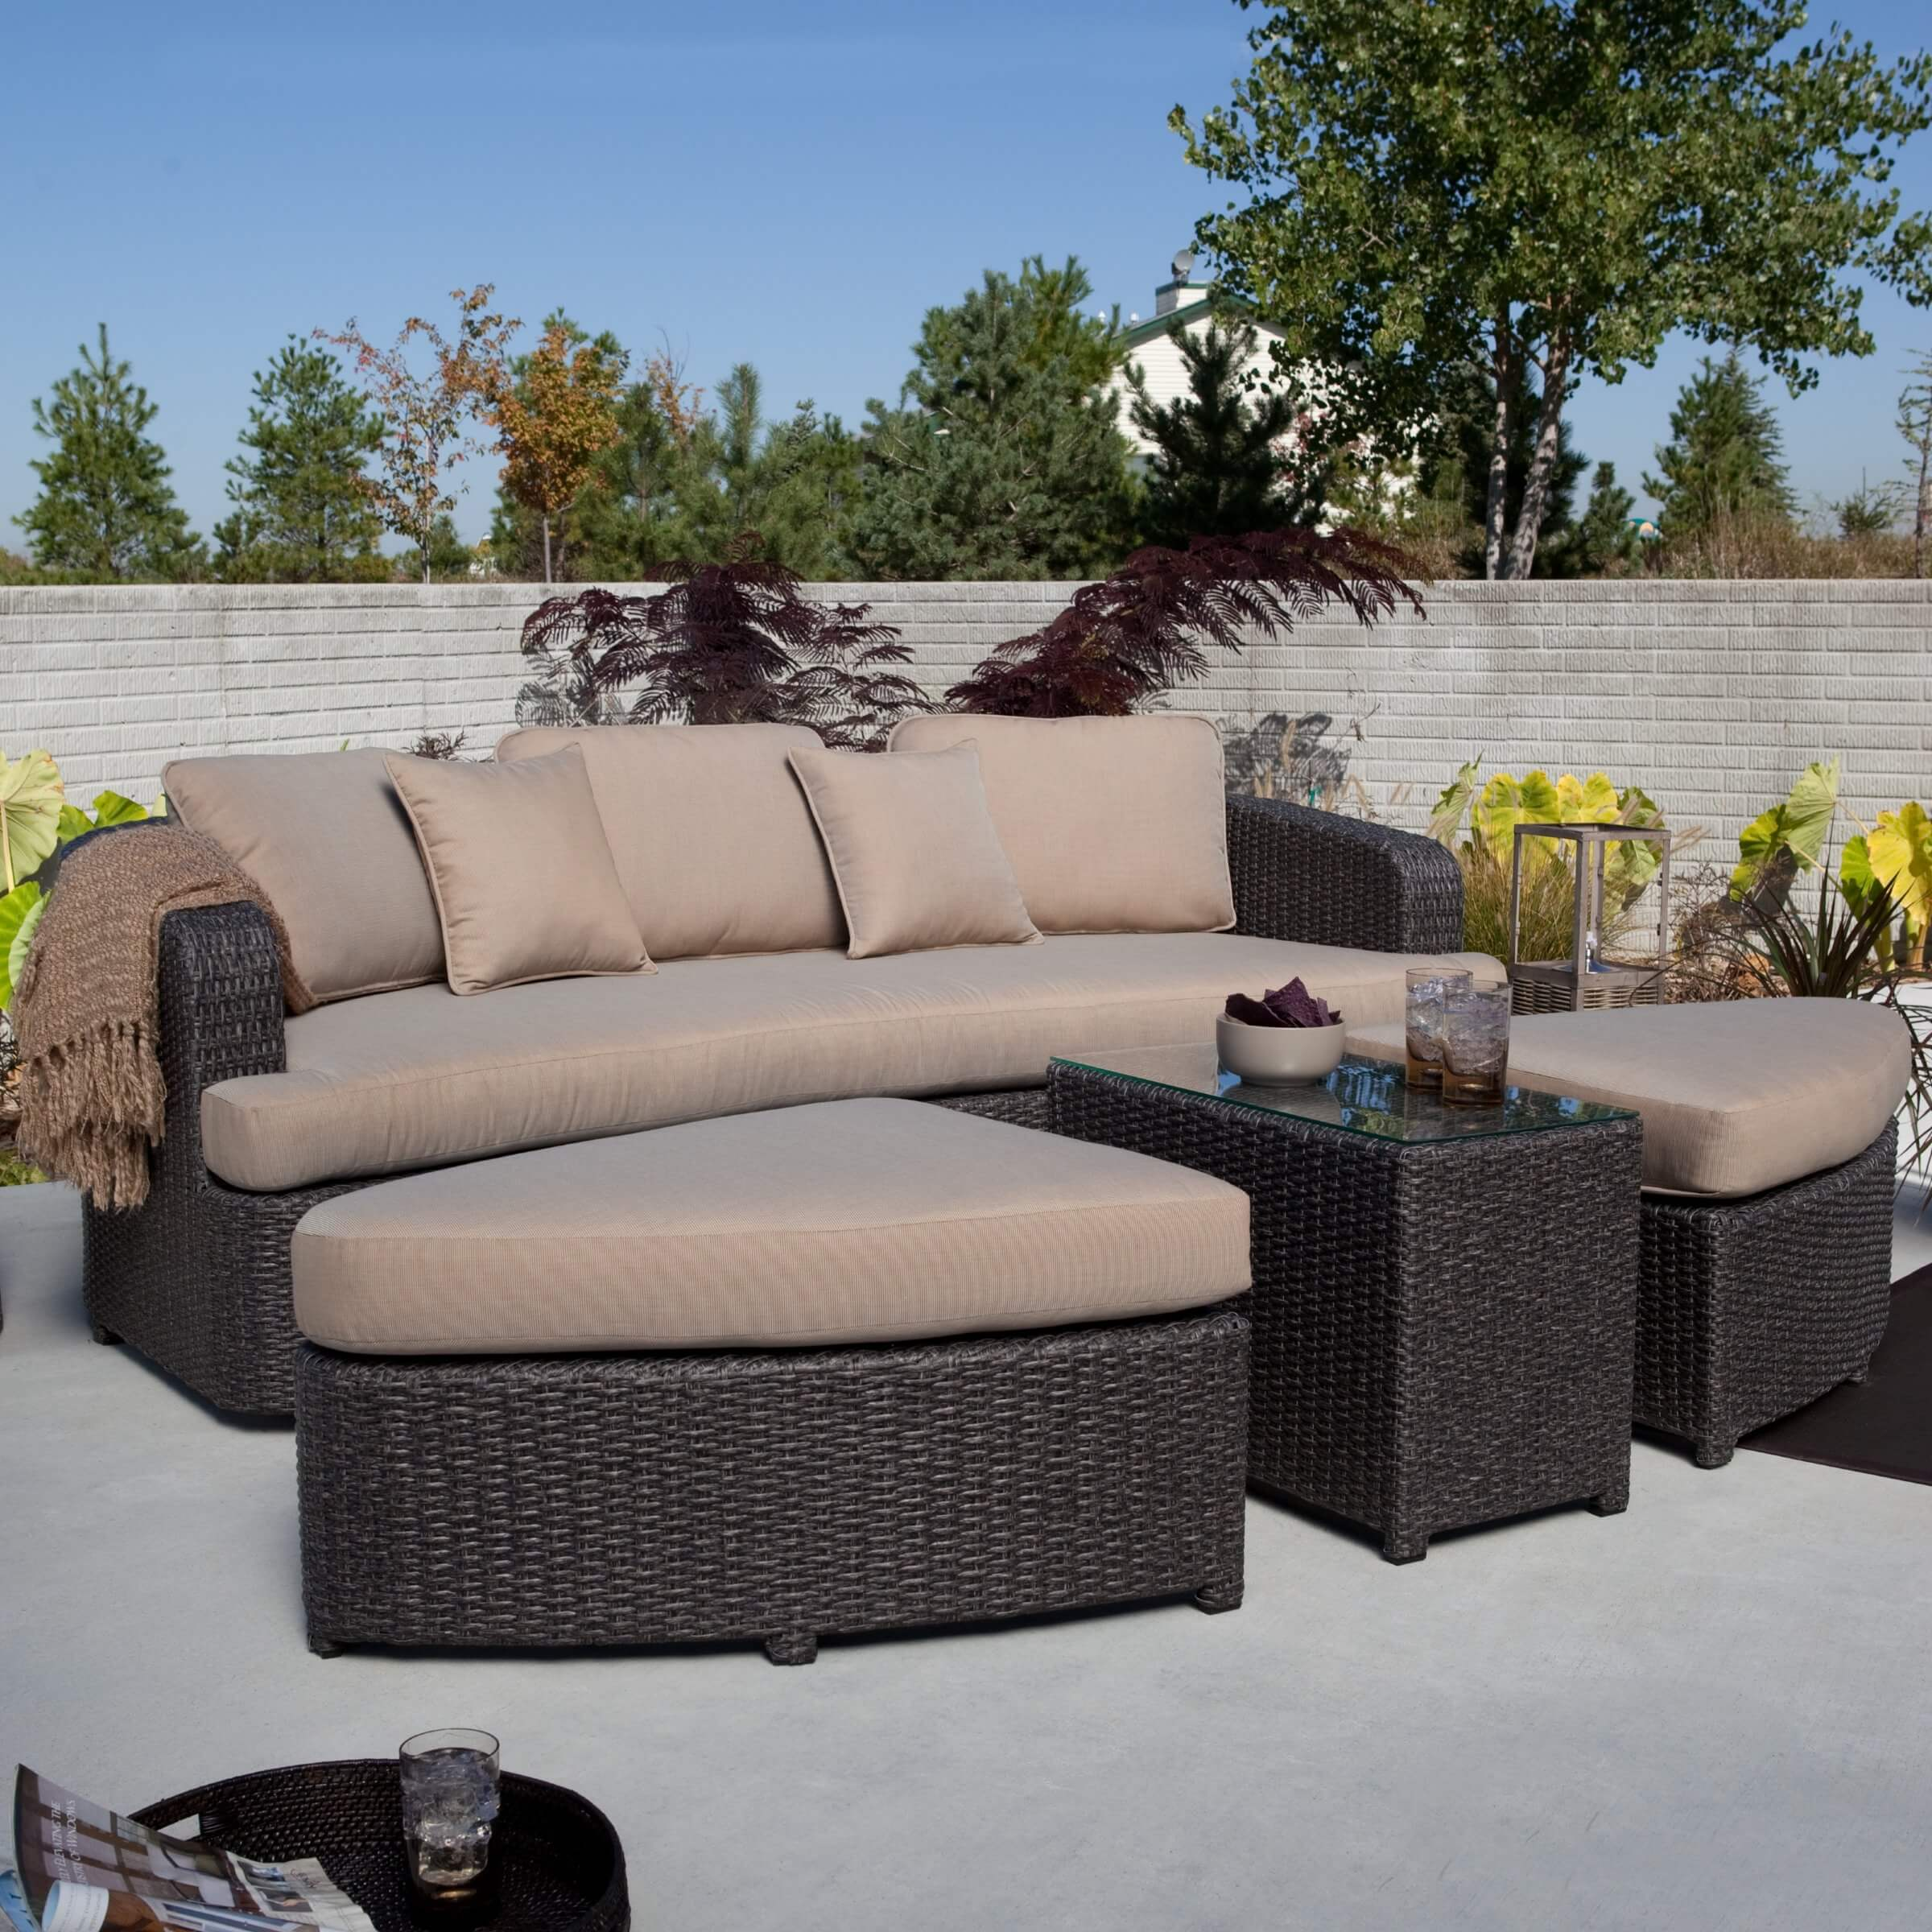 This patio sectional can transform from a conversation oriented set to a comfortable single piece lounger, offering configurations not found with most sets. Glass topped table section sits at center.